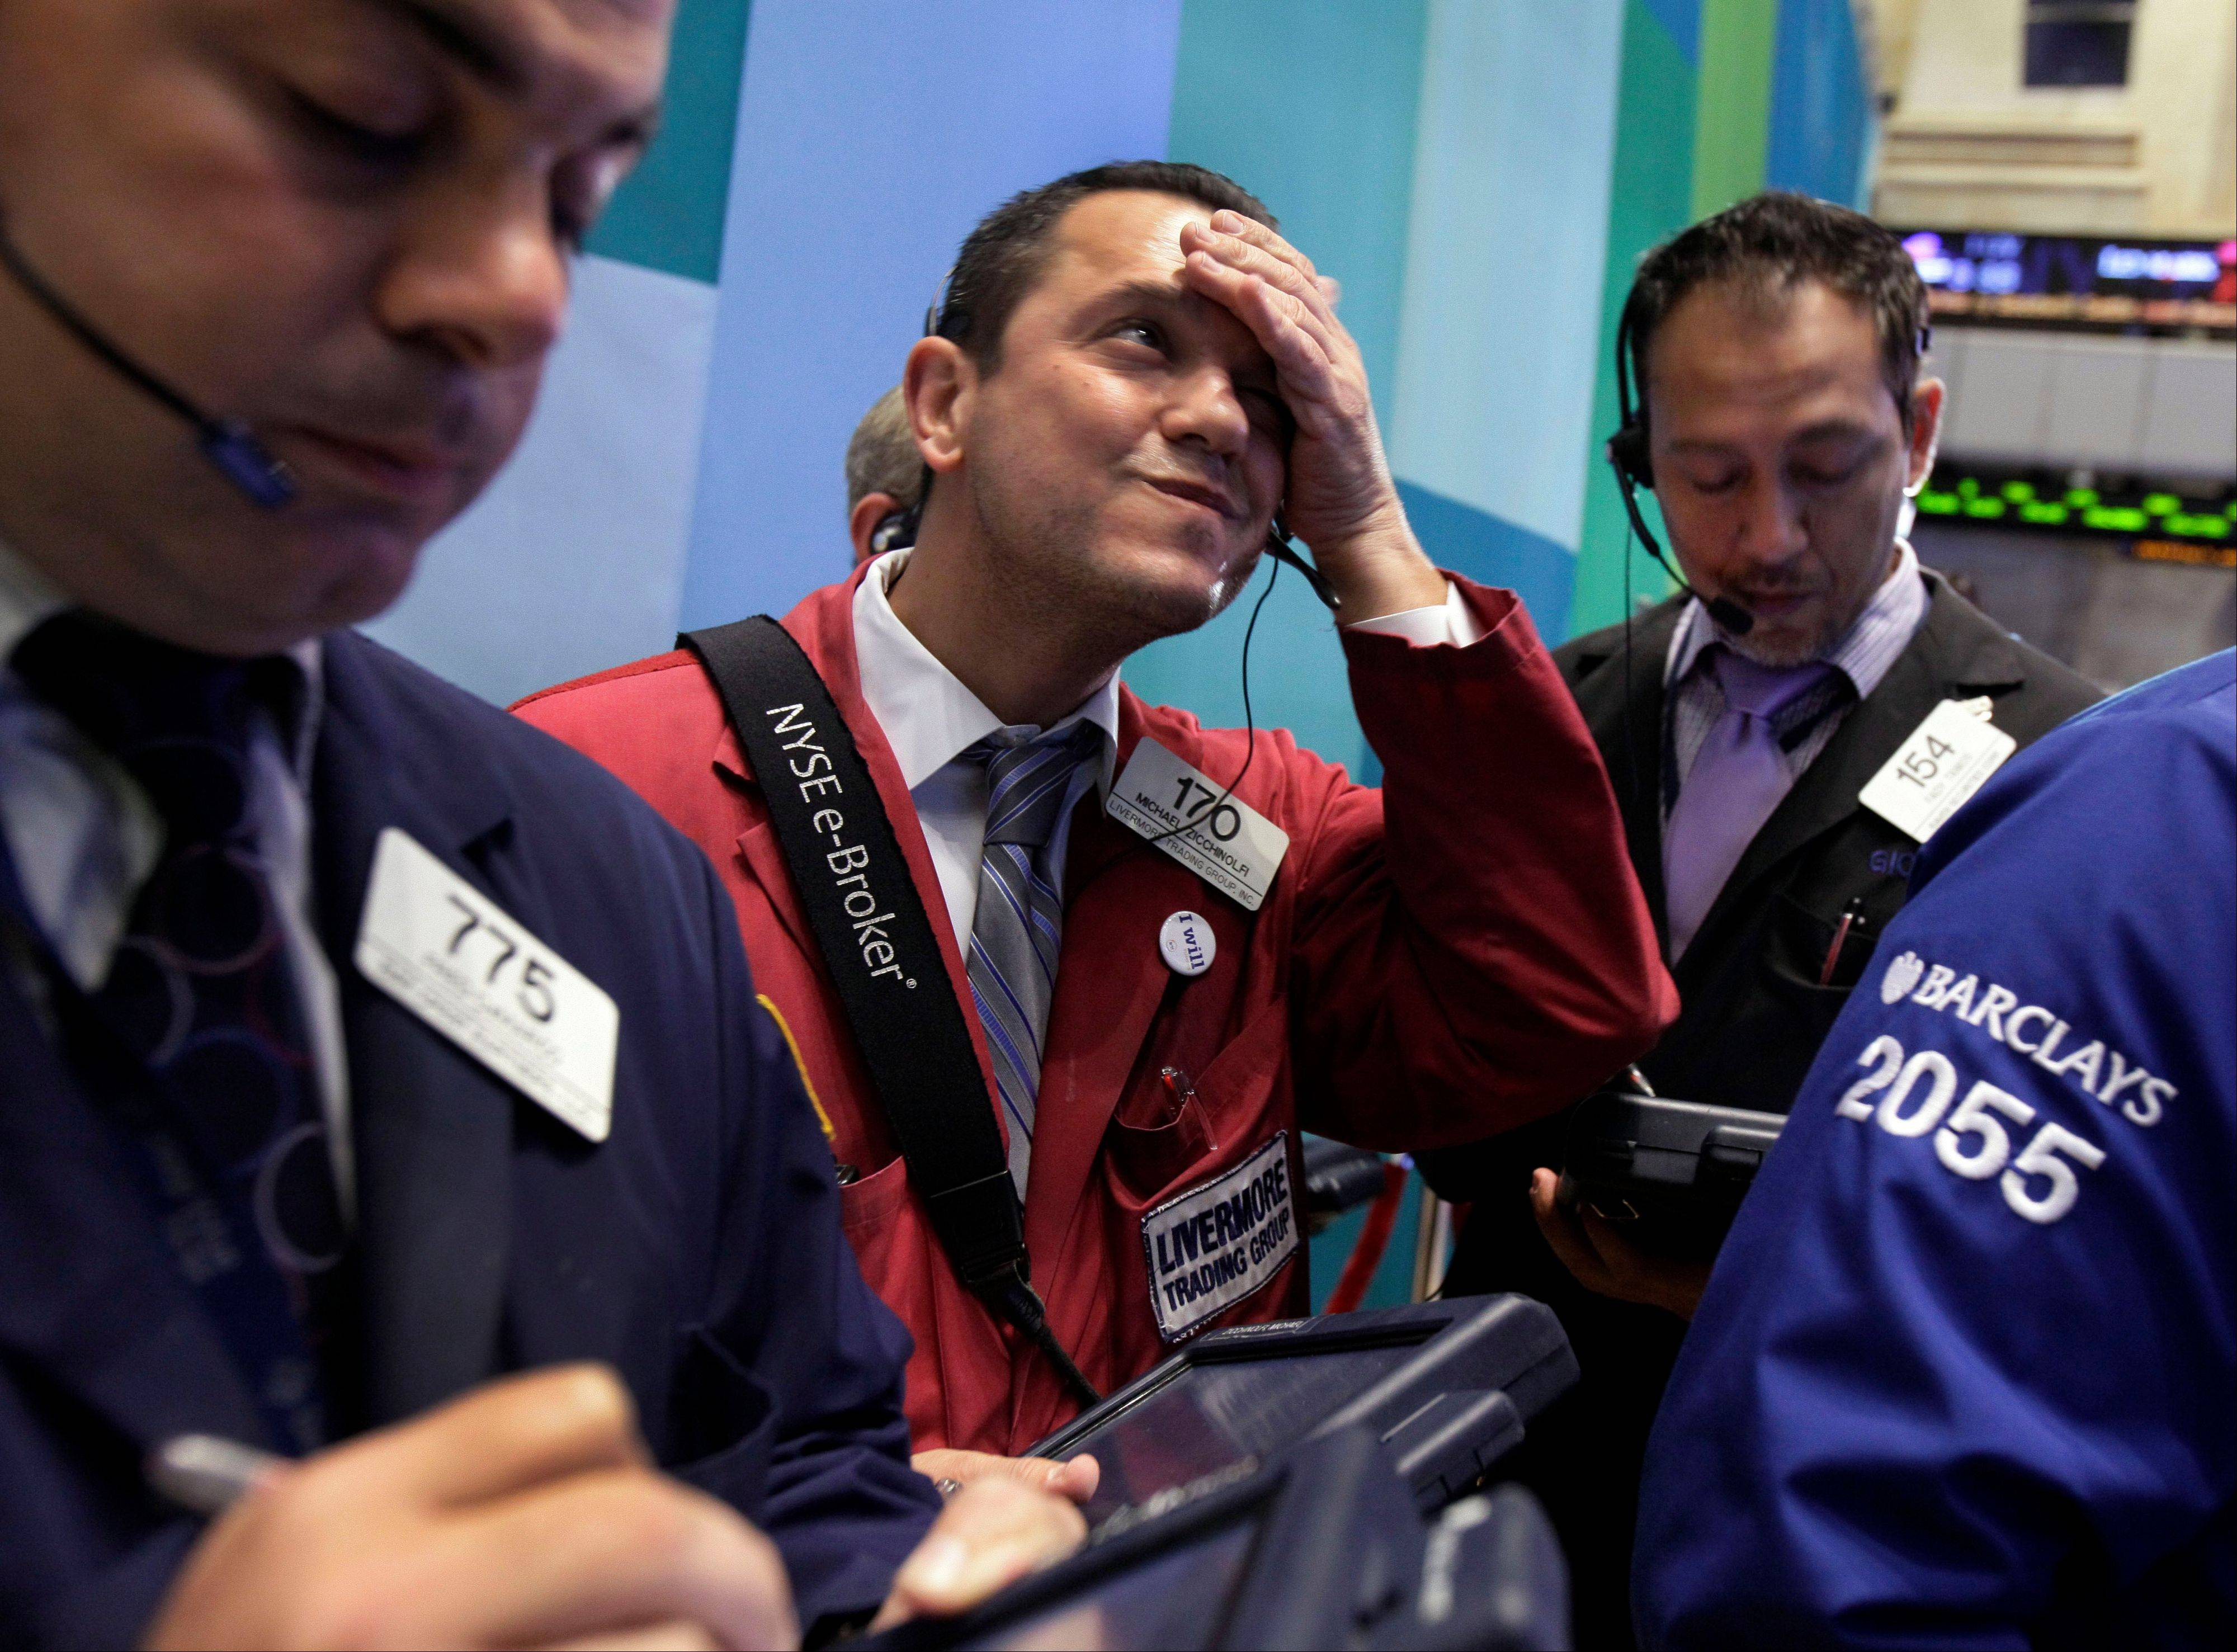 U.S. stocks erased earlier losses, sending the benchmark Standard & Poor's 500 Index higher for the first time in three days, as an advance in Apple Inc. shares overshadowed disappointing corporate results.